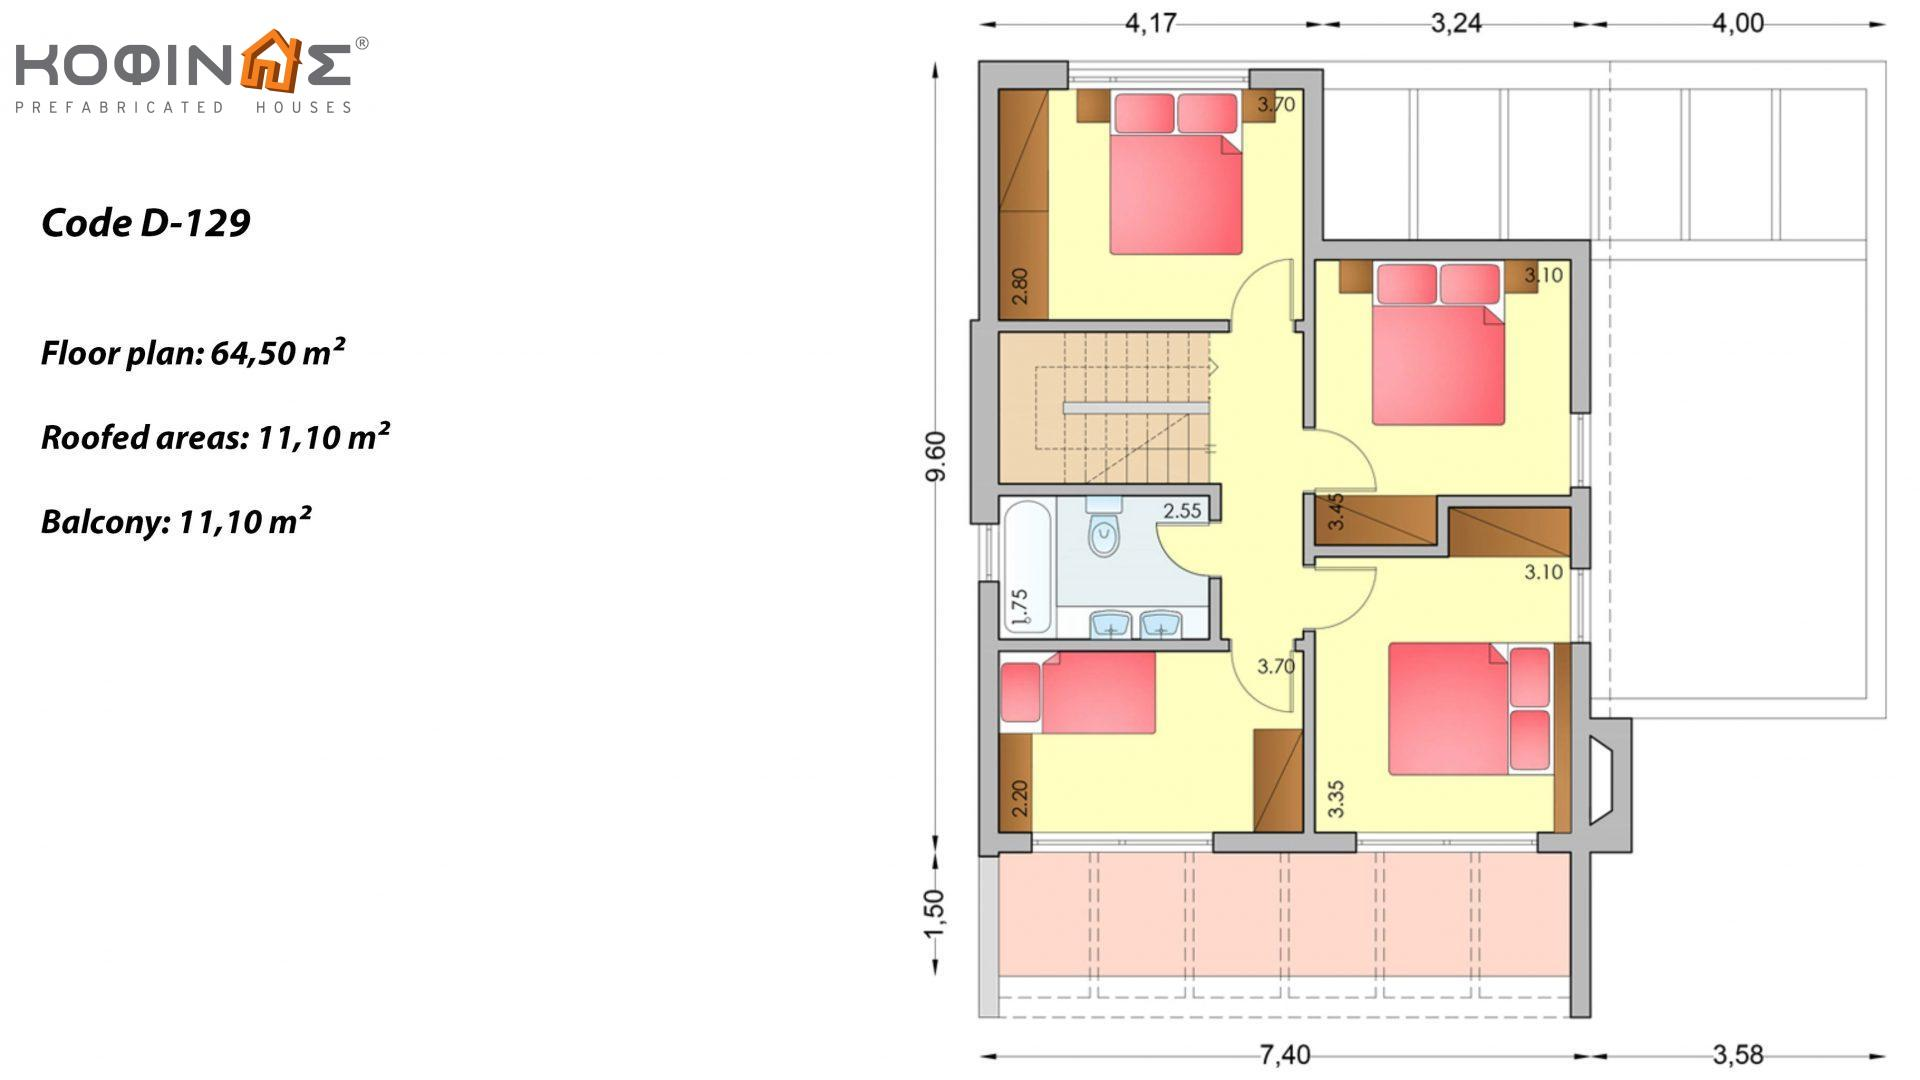 2-story house D-129, total surface of 129,50 m², +Garage 20.77 m²(=150.27 m²),roofed areas 40.70 m²,balconies 11.10 m²